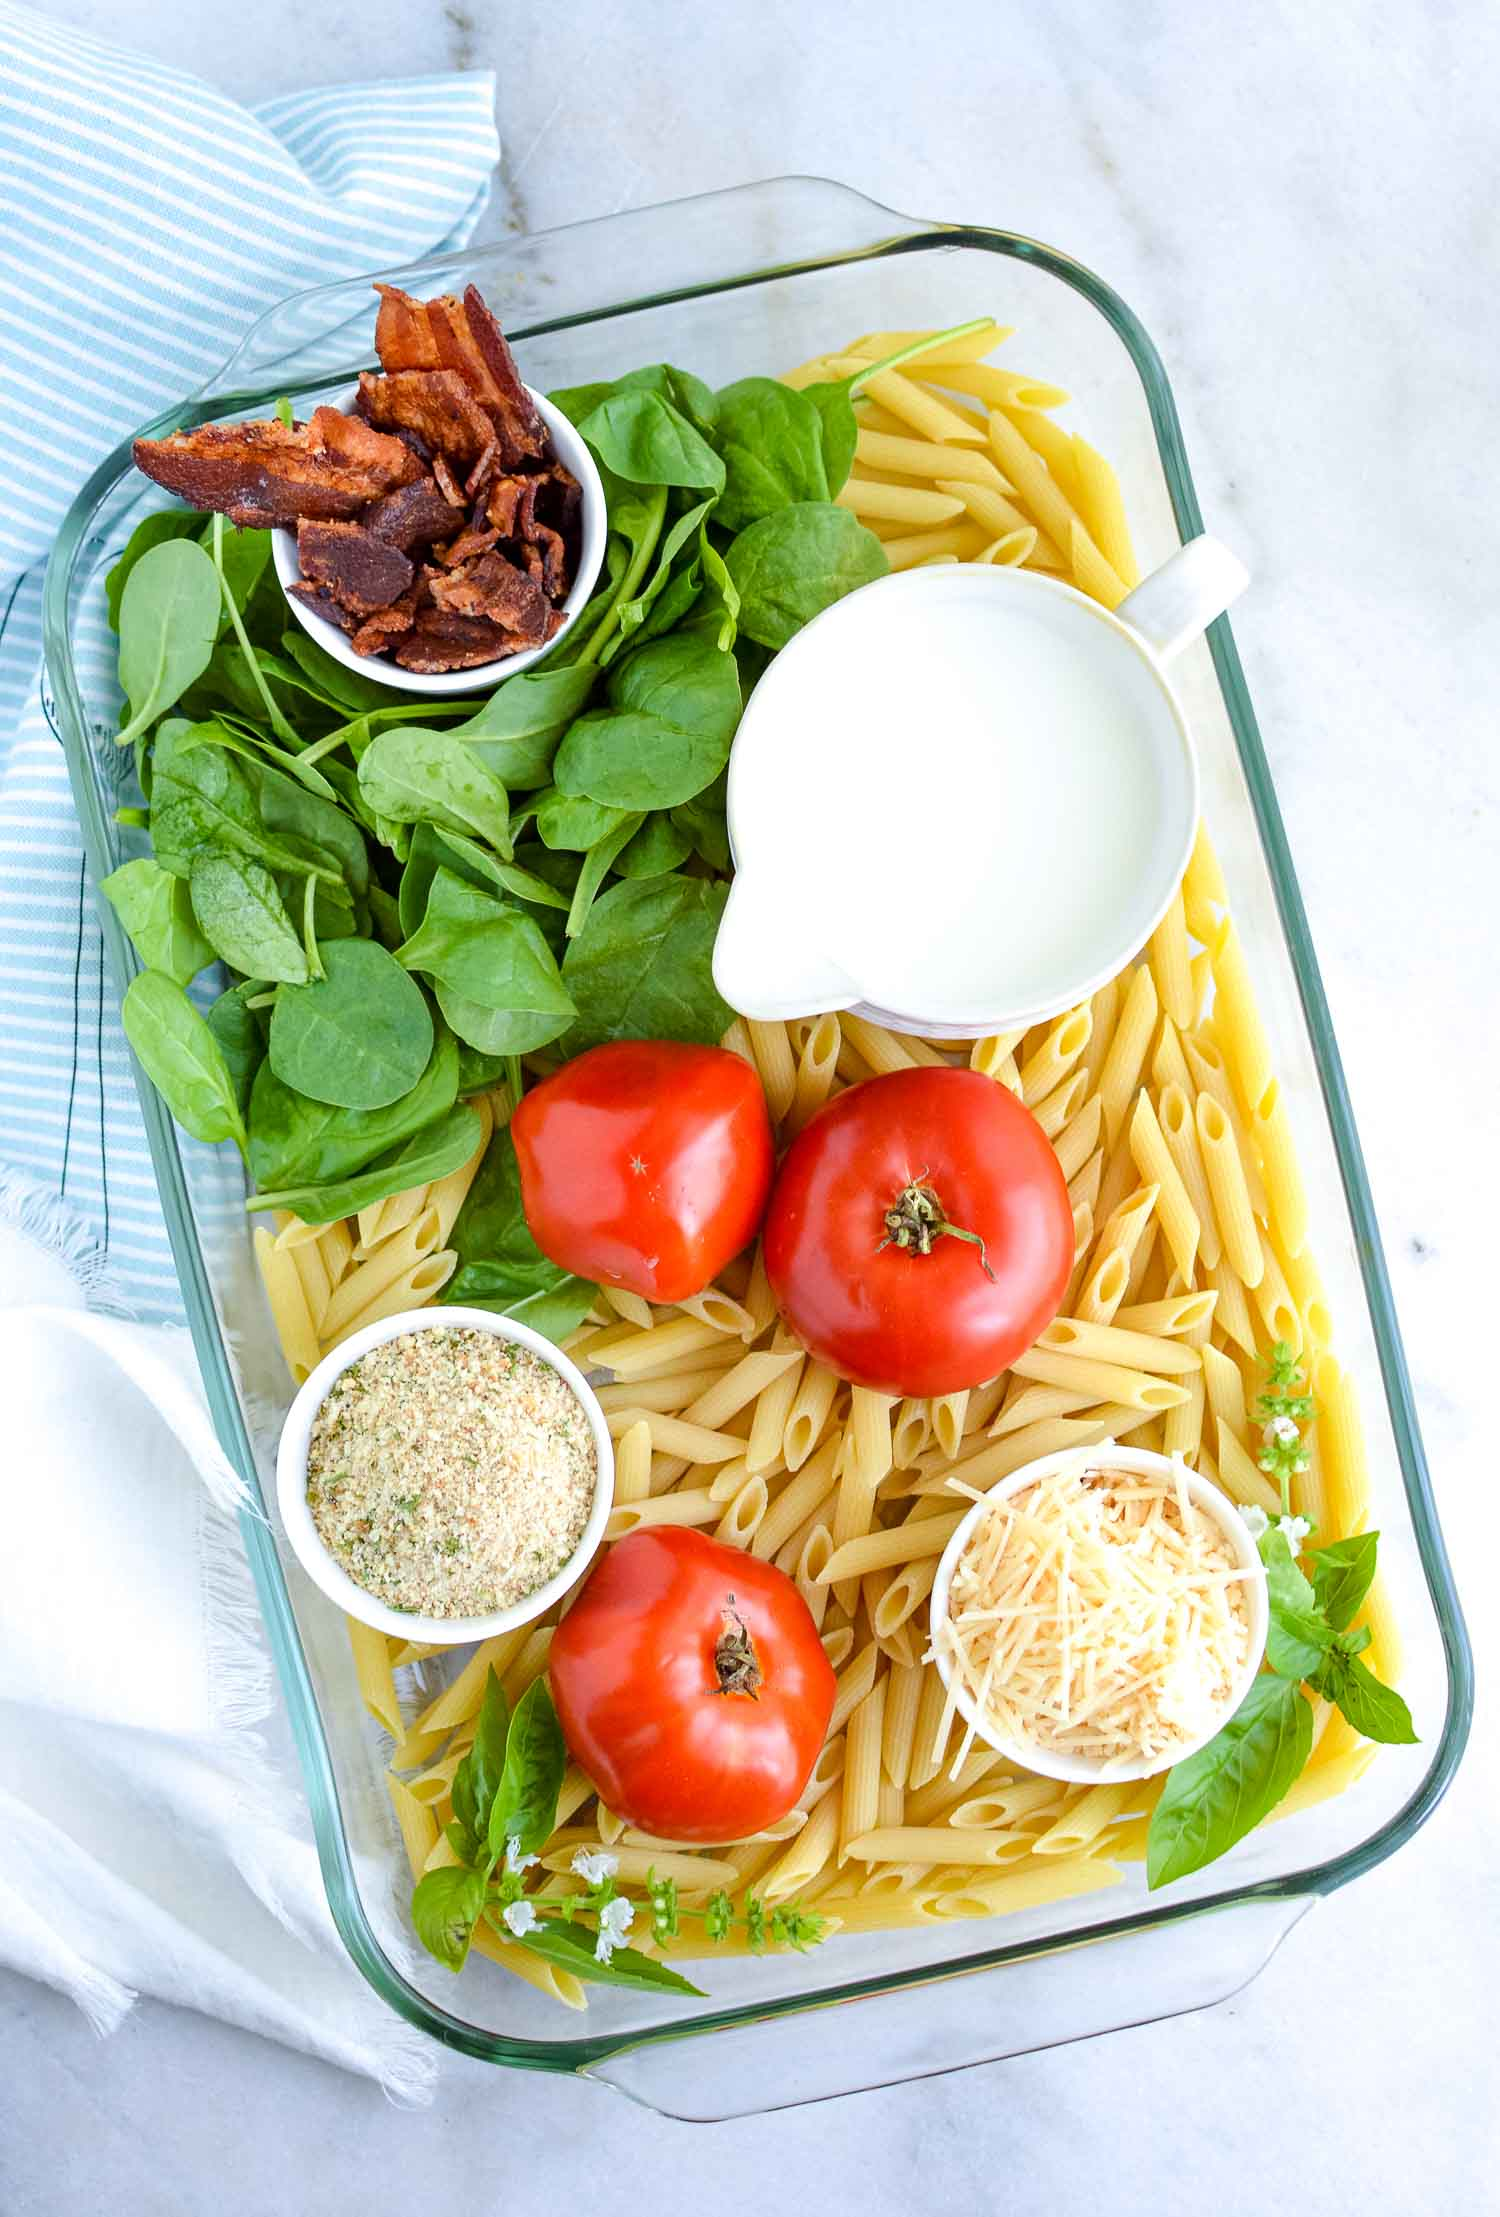 A glass pan with ingredients like pasta, bacon, tomatoes, bread crumbs, milk, cheese and spinach in it.